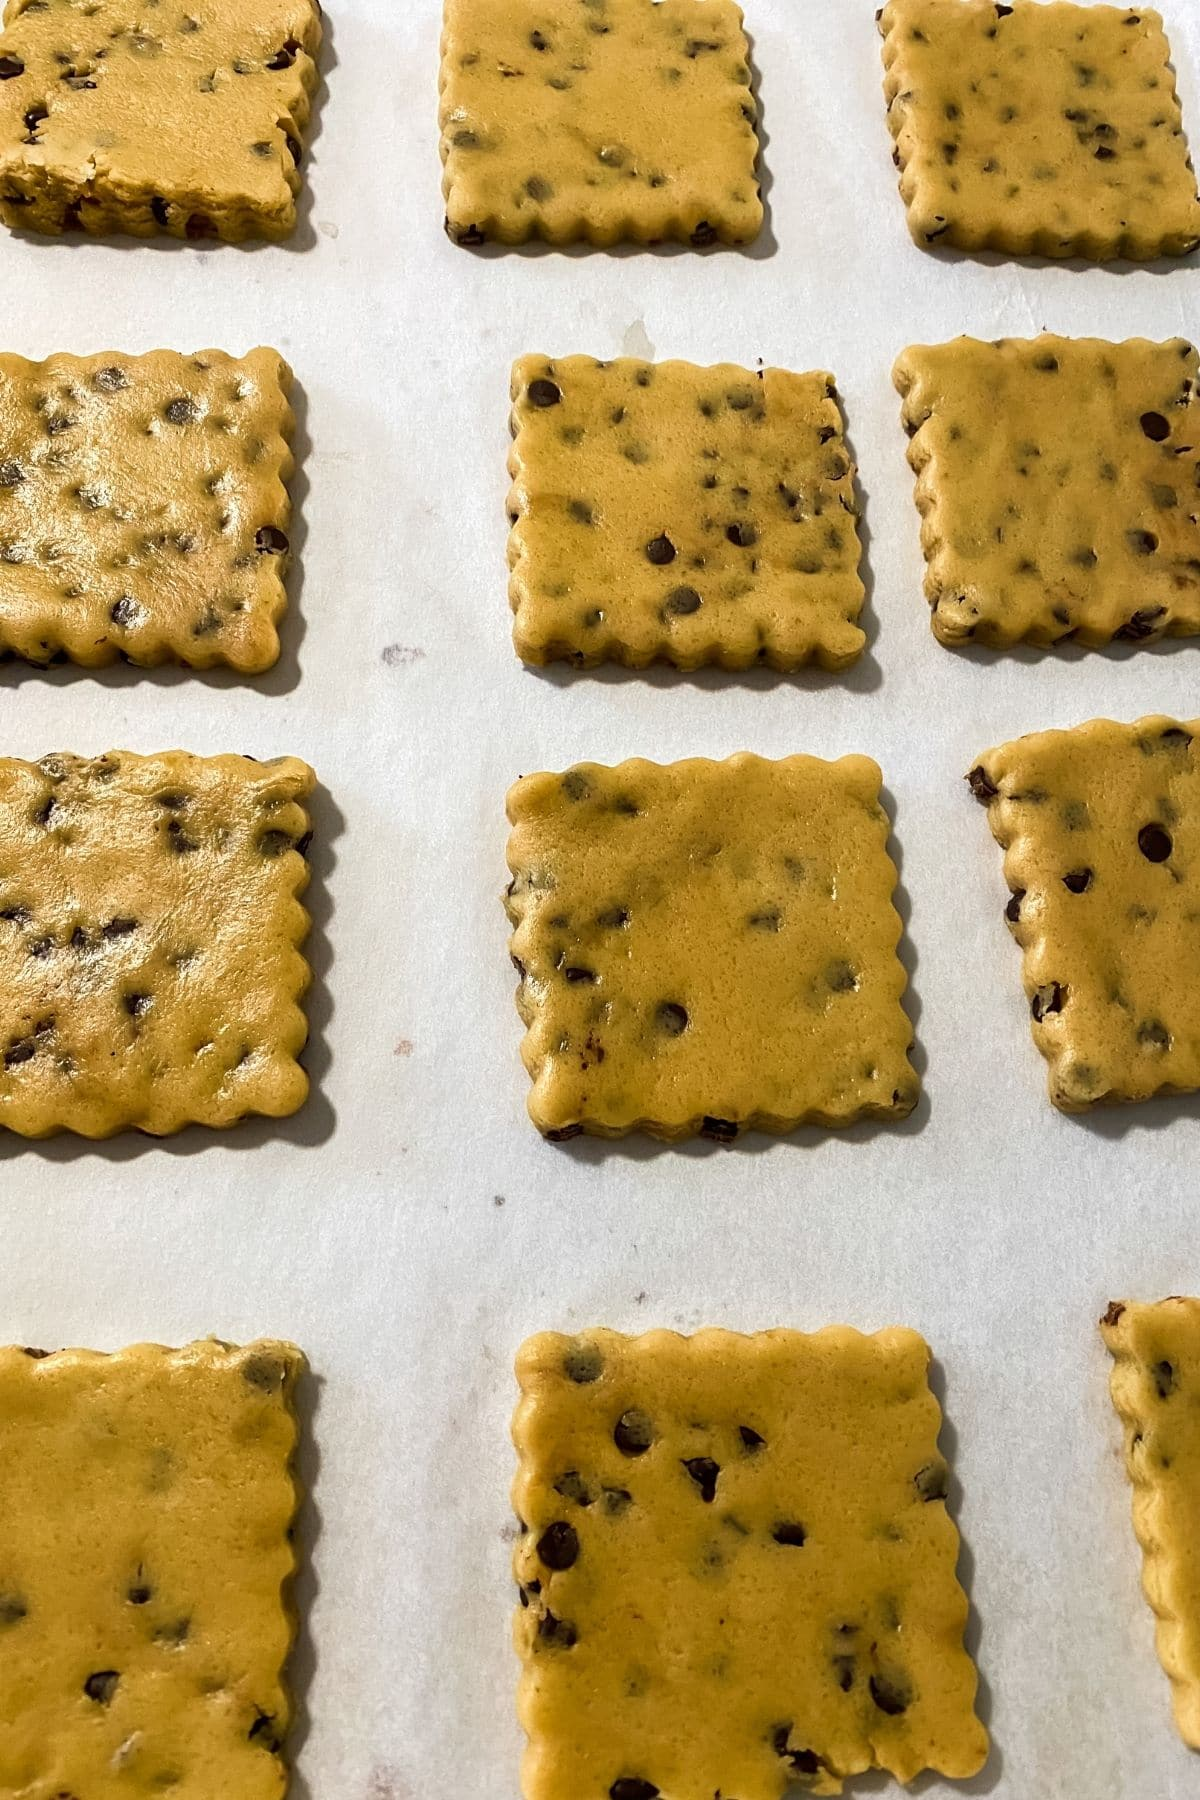 Cookies cut and on baking sheet before baking